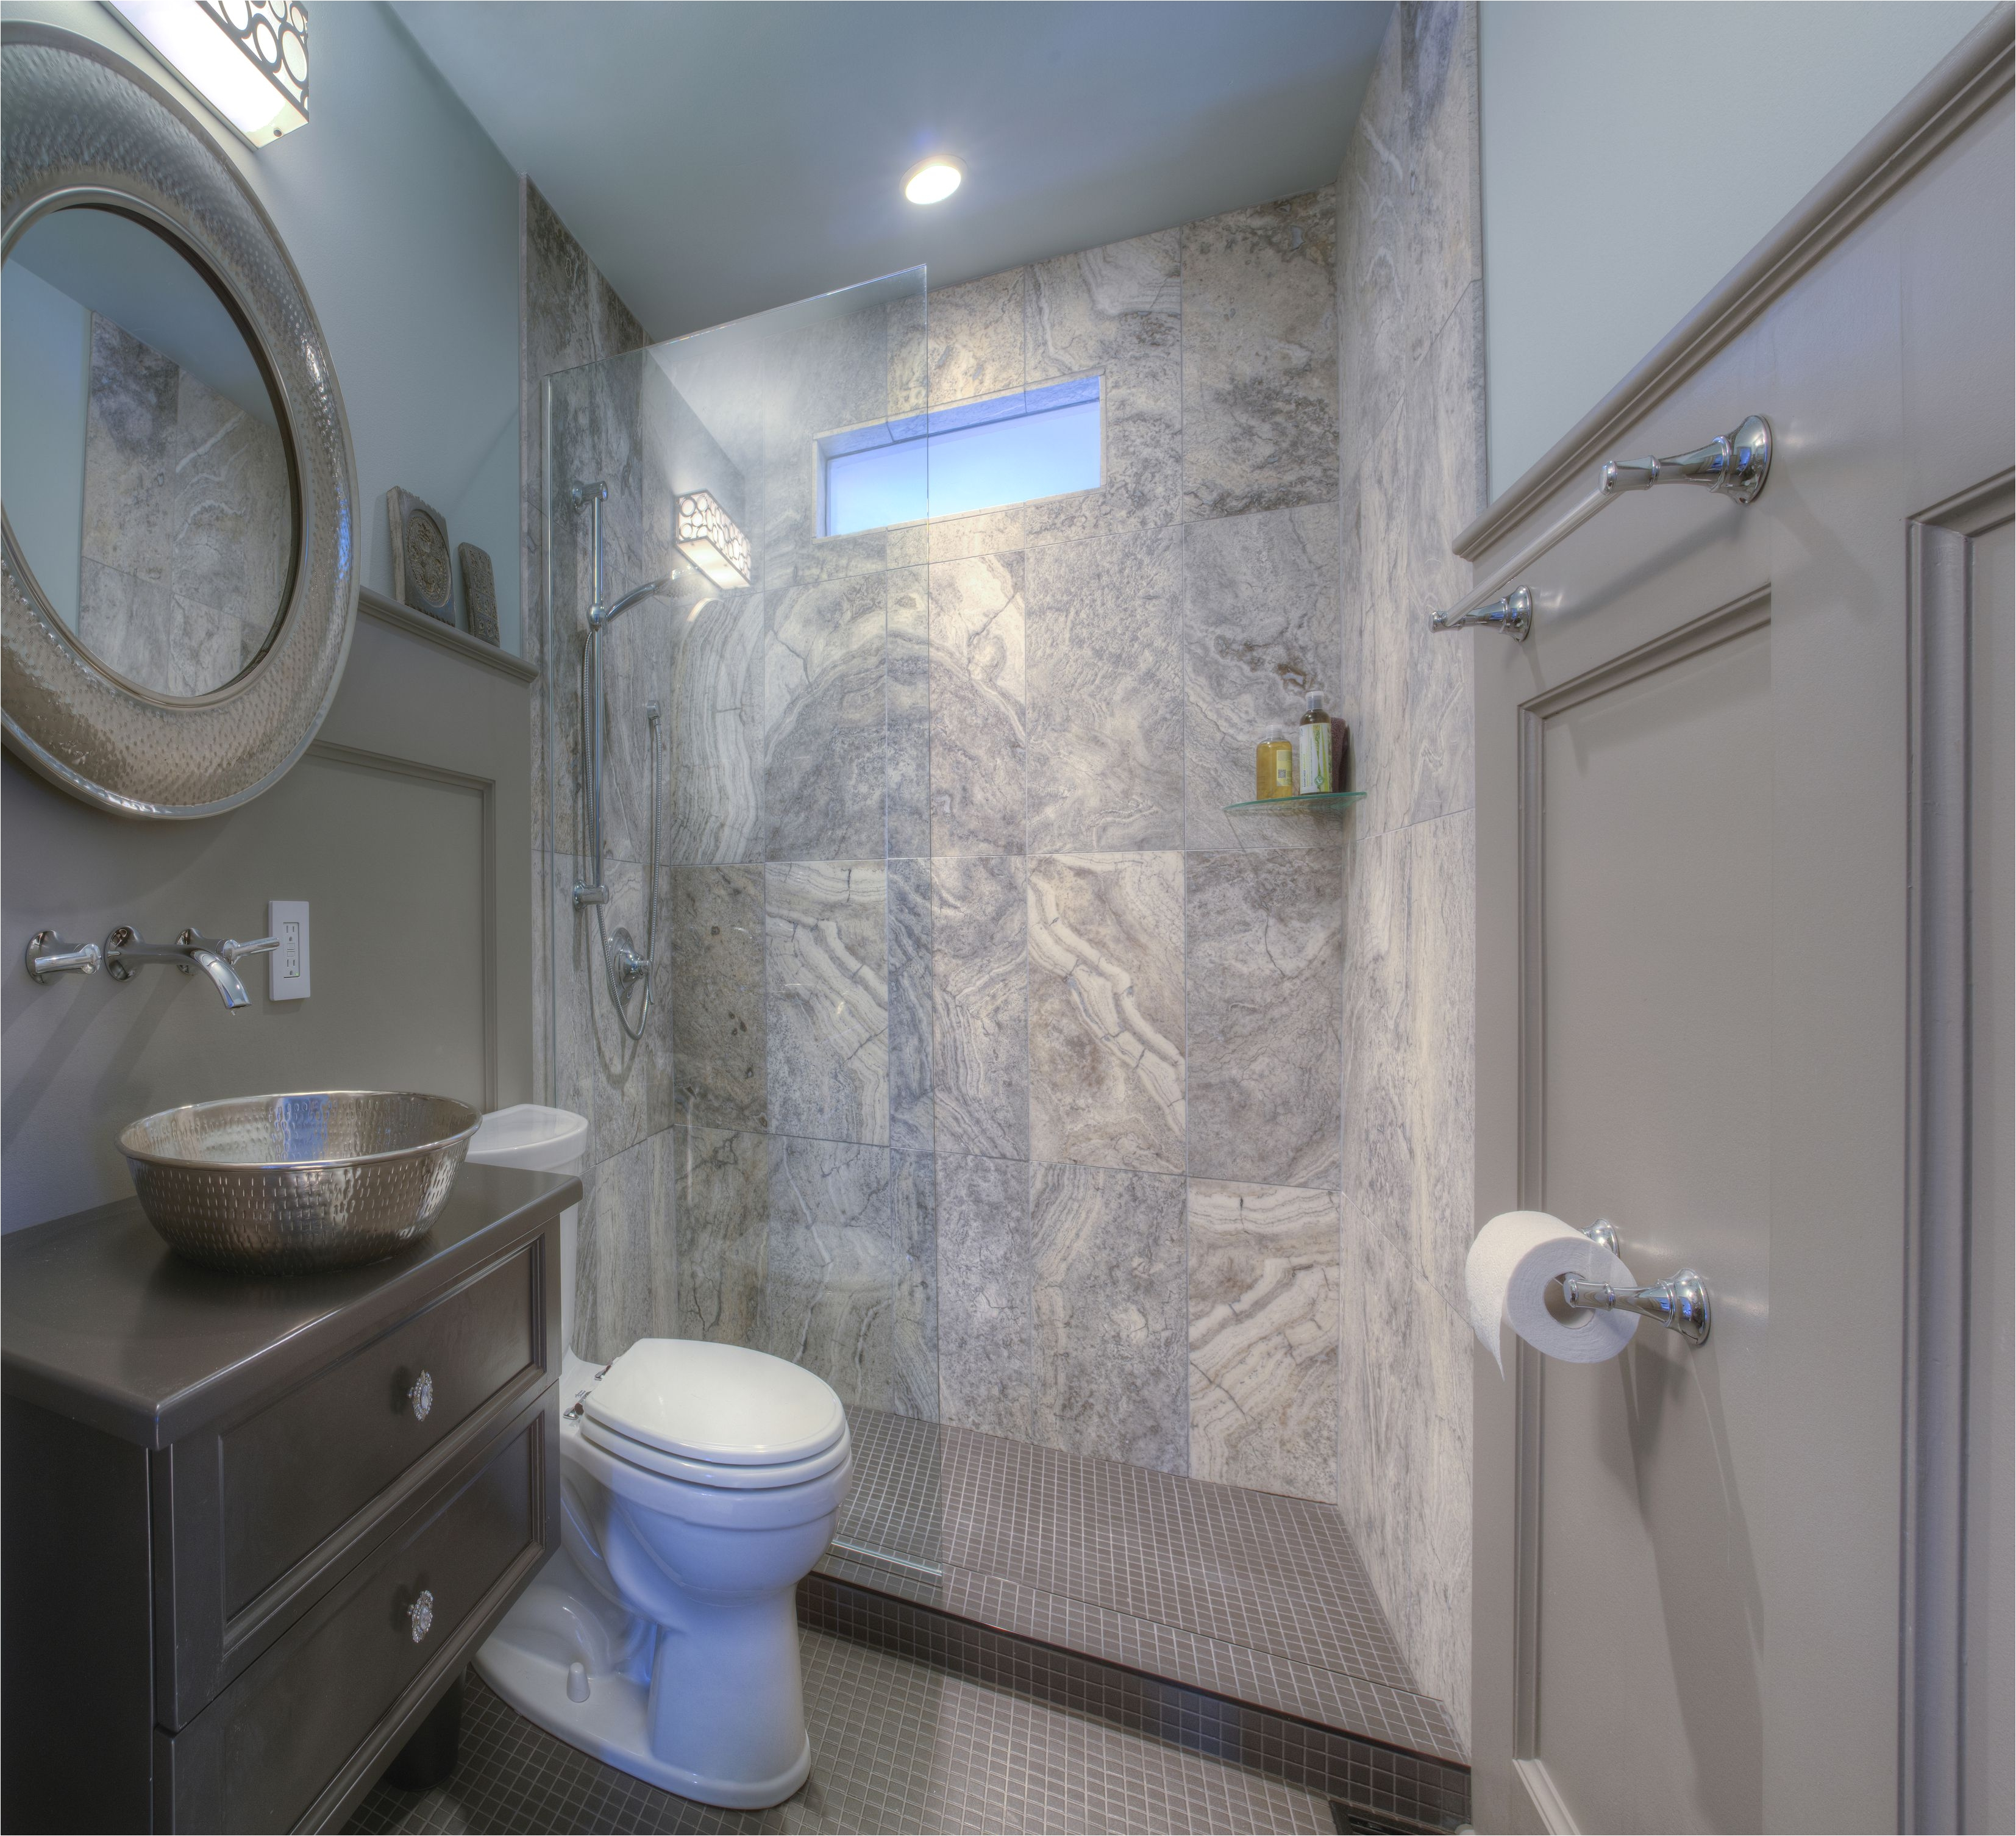 wide angle view of a very small bathroom 5a948d45ba a8a210